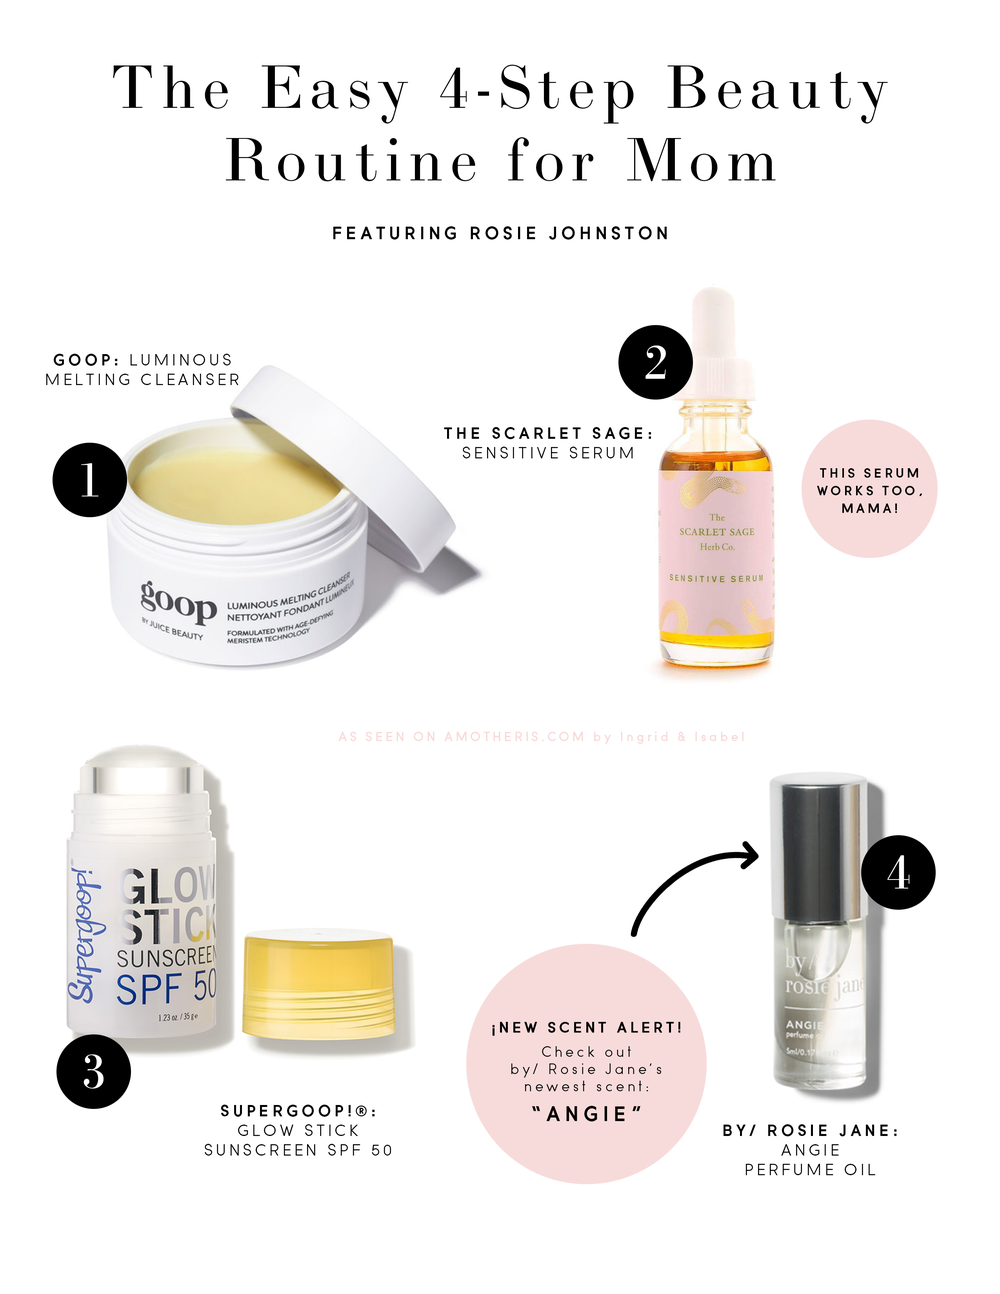 The Easy 4-Step Beauty Routine For Mom • A Mother Is, the blog All For Mom • Ingrid & Isabel